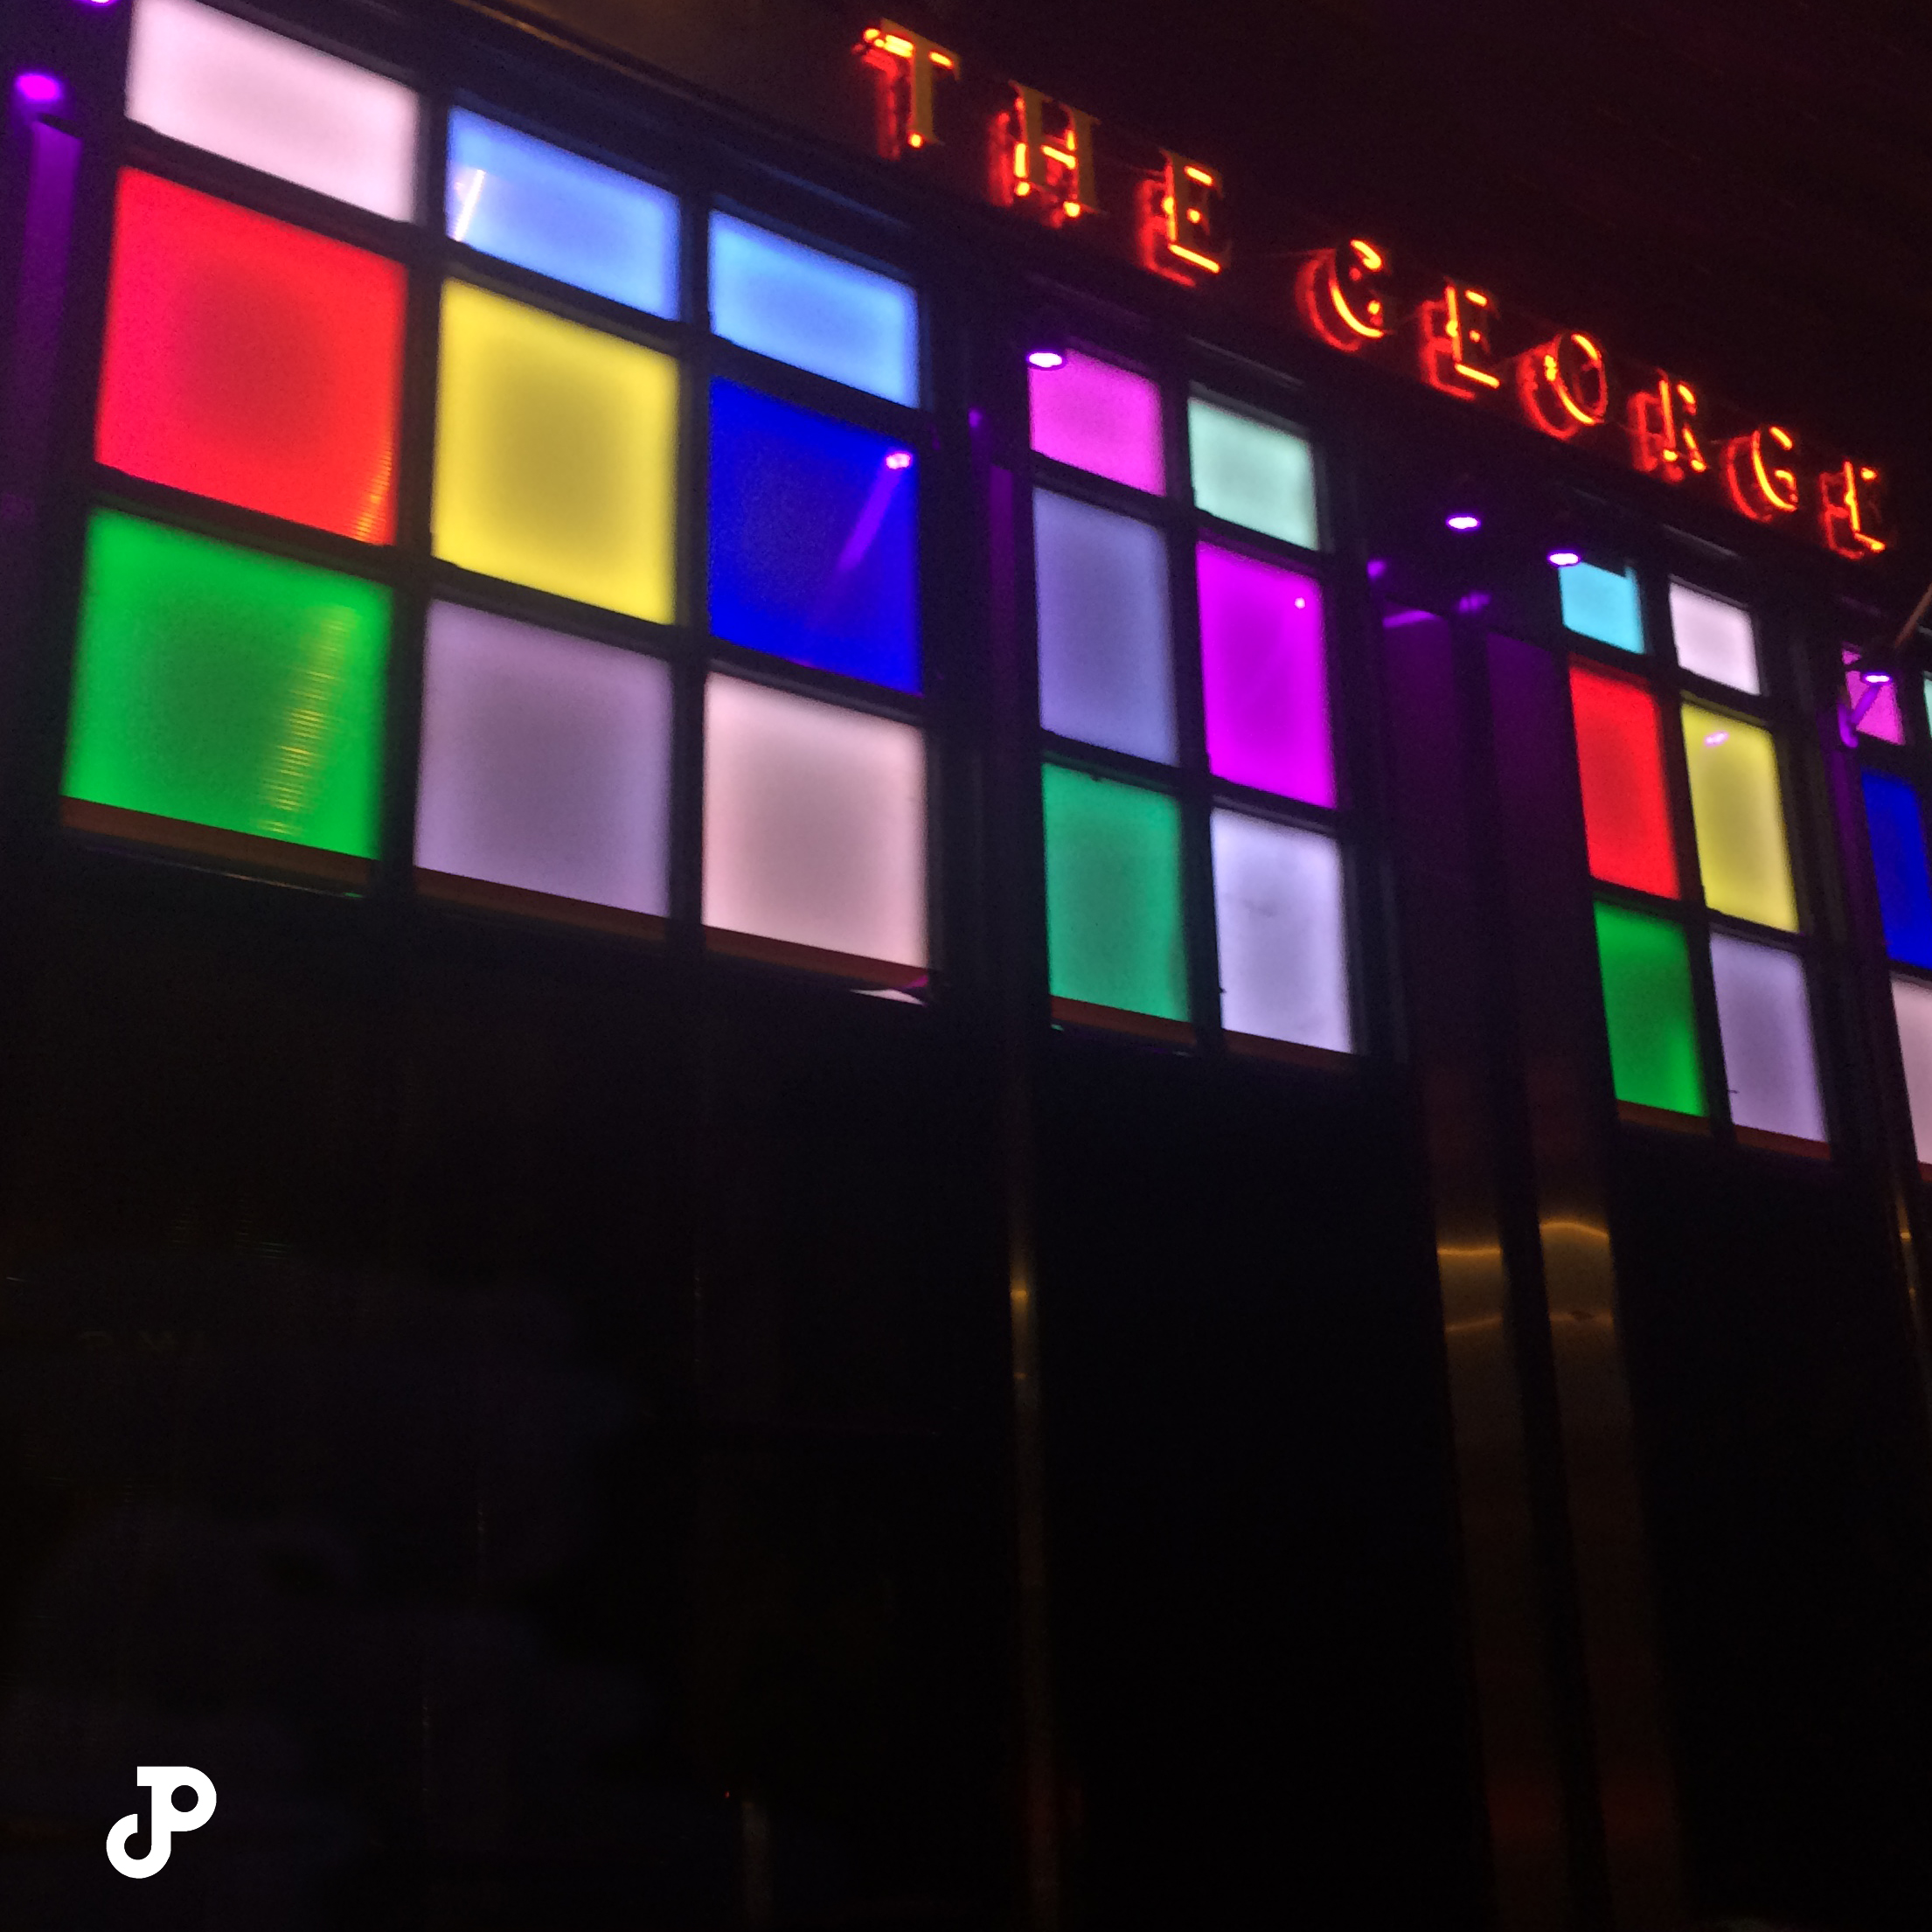 the outside of The George pub, which has colorful stained glass windows and a red neon sign